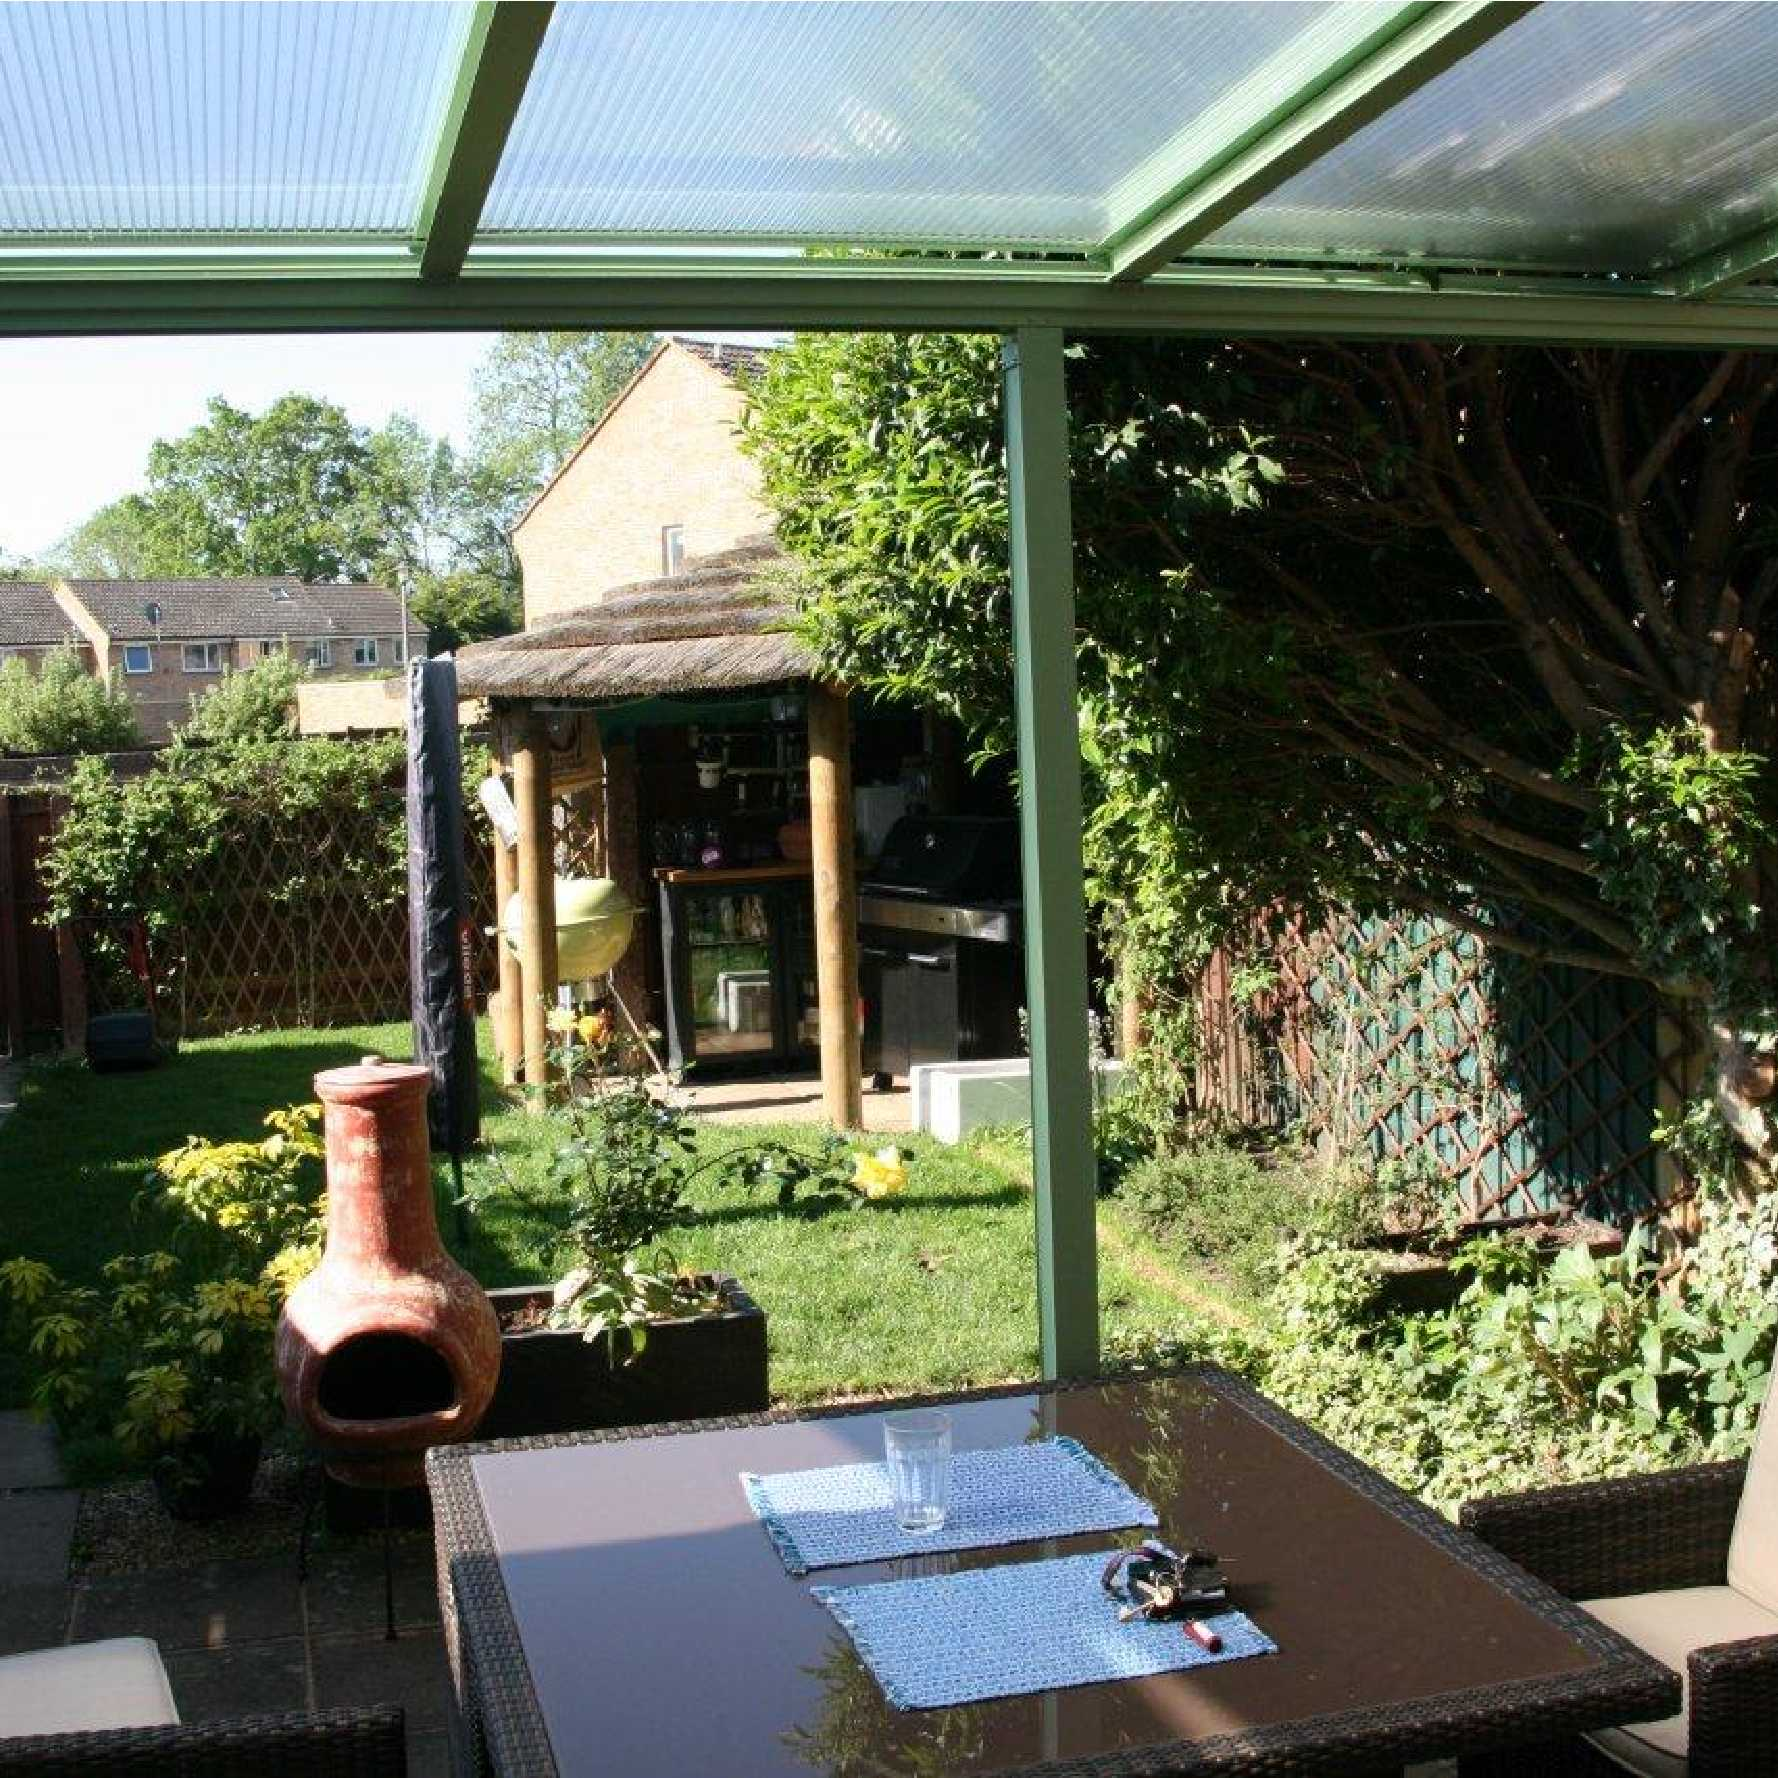 Affordable Omega Smart White Lean-To Canopy with 16mm Polycarbonate Glazing - 10.6m (W) x 4.0m (P), (5) Supporting Posts